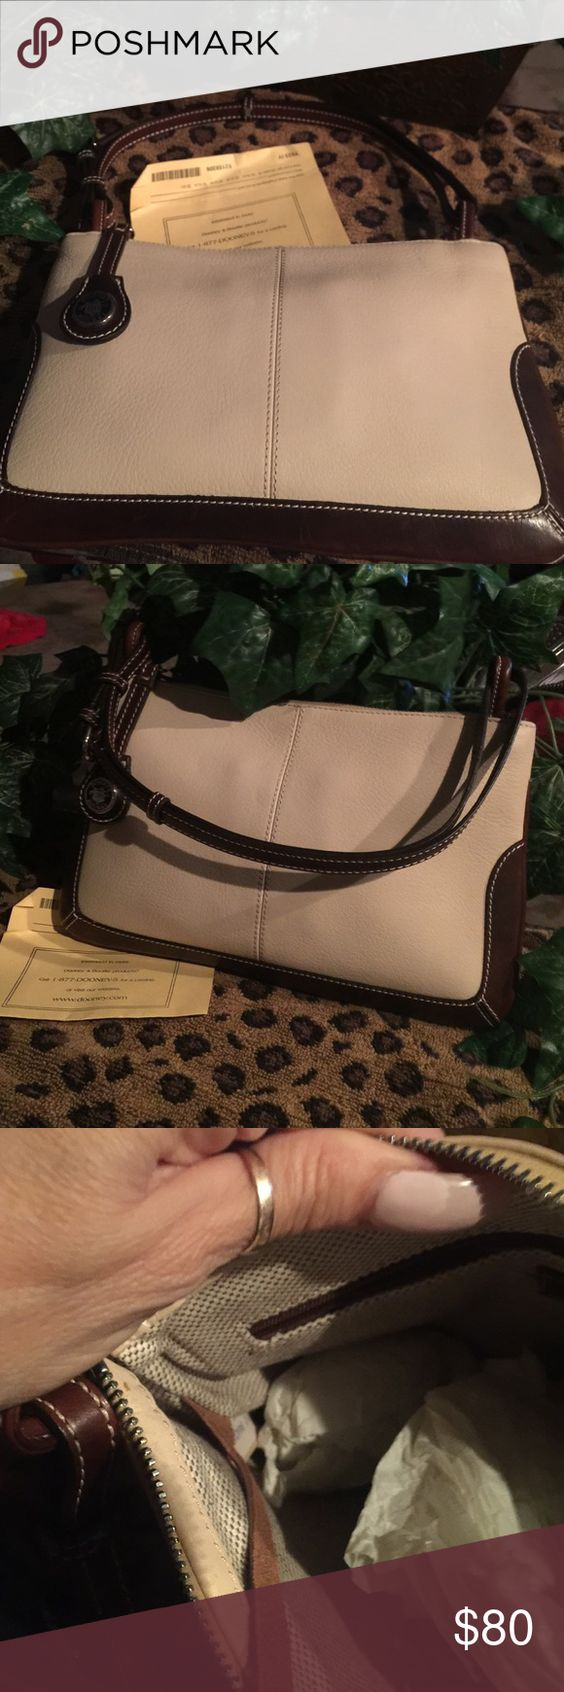 Dooney &Bourke purse size 7by 11 new New never used used 7by 11 tan and brown Dooney & Bourke Bags Mini Bags